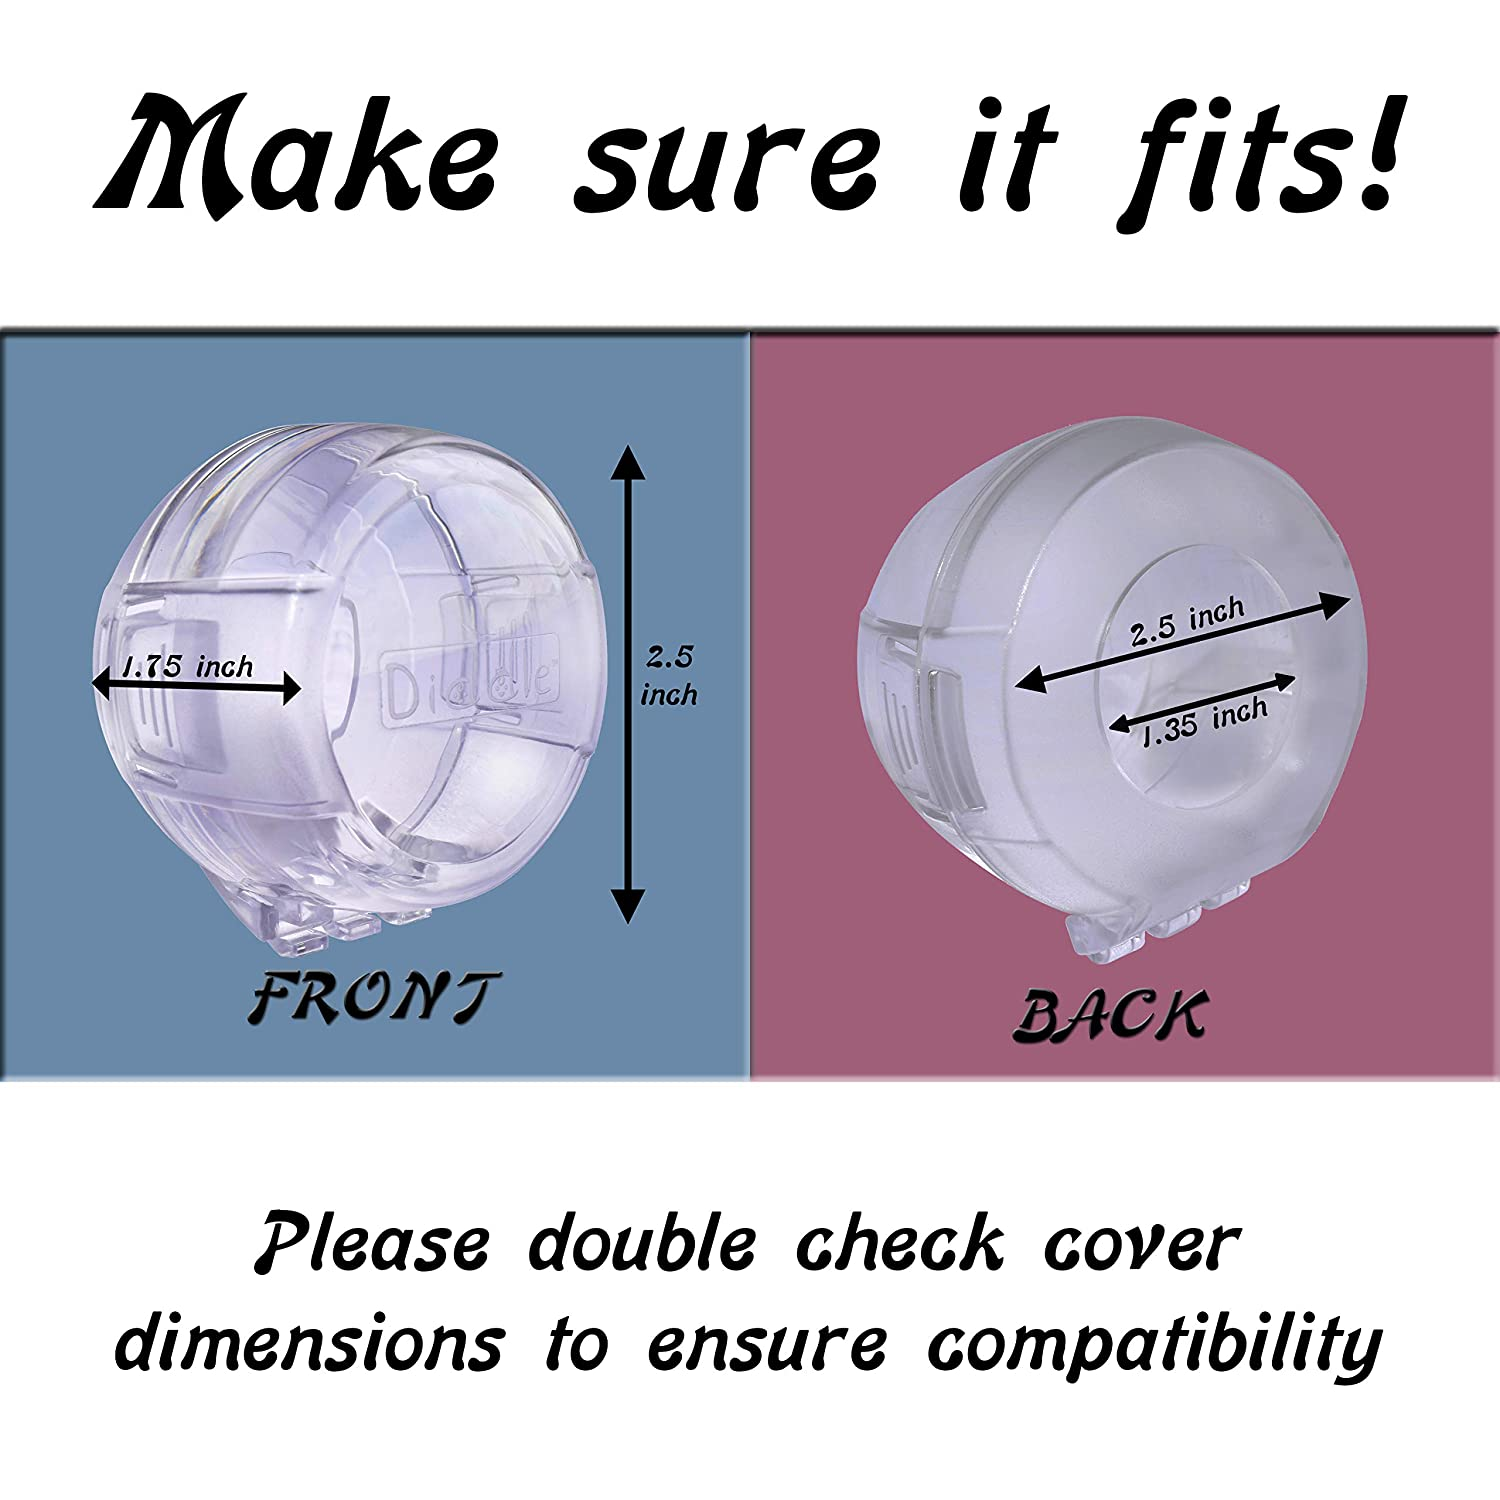 6 Pack Clear Stove Knob Safety Covers - Protect Little Kids with A Child Proof Lock for Oven/Stove Top/Gas Range - Baby/Toddler Kitchen Safety Guard - Check Dimensions